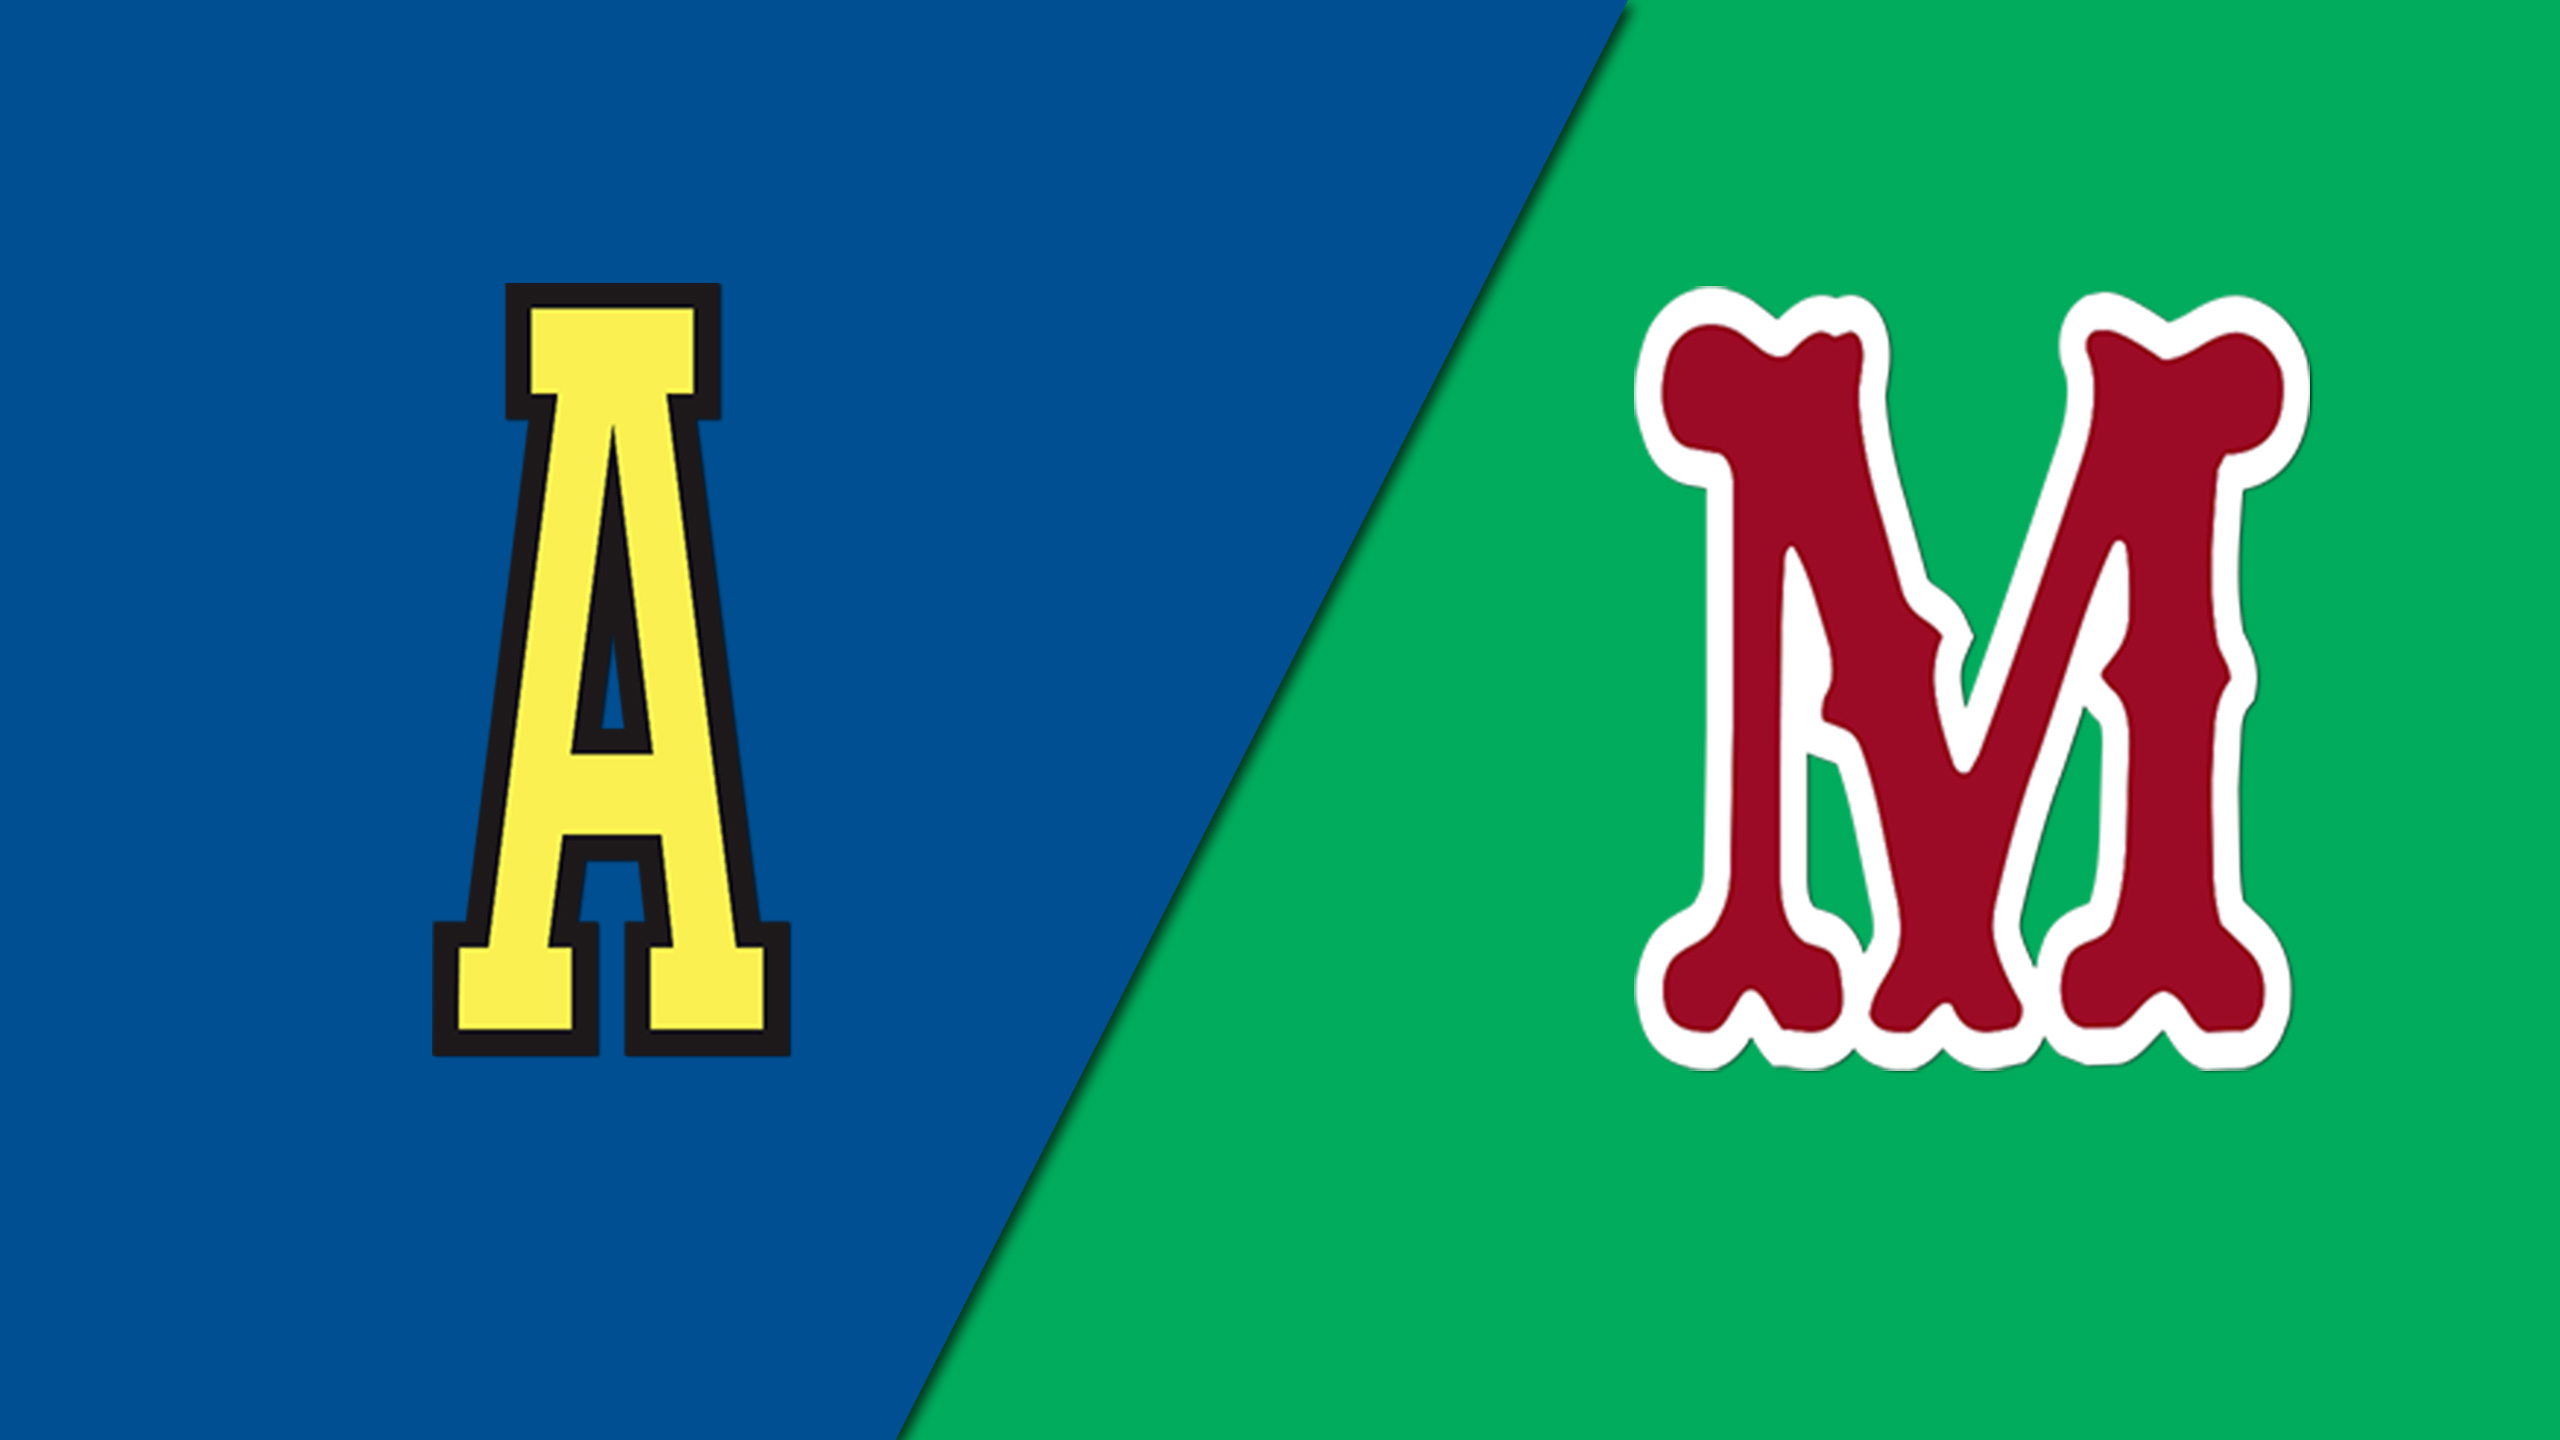 Queensland, Australia vs. Tamaulipas, Mexico (Little League World Series) (re-air)